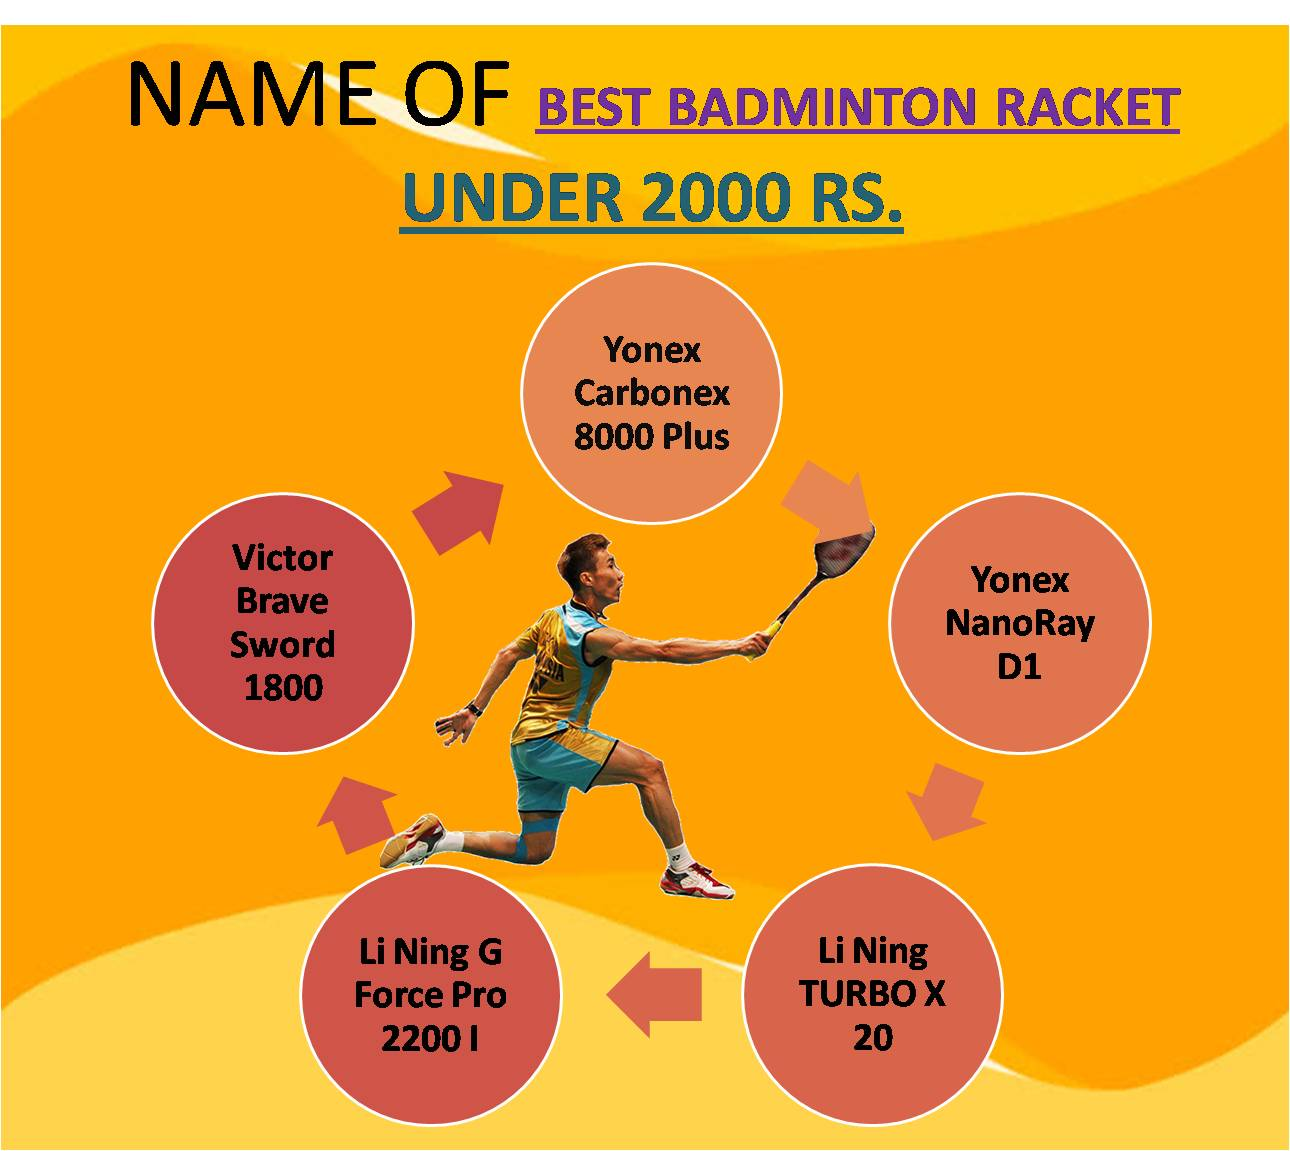 NAME OF BEST BADMINTON RACKET UNDER 2000 RS